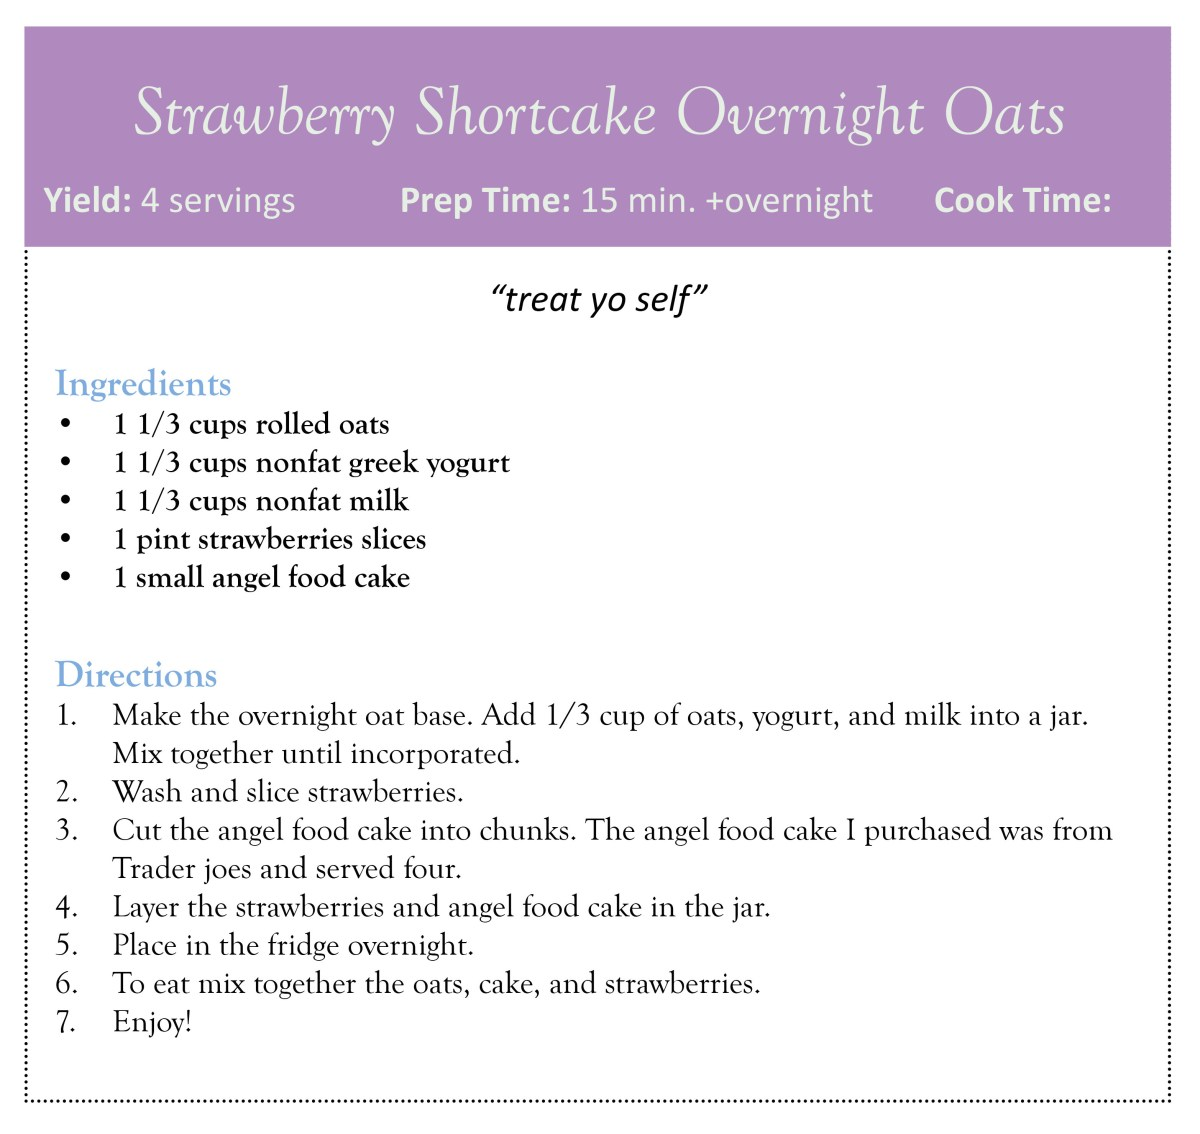 Strawberry shortcake overnight oats.jpg